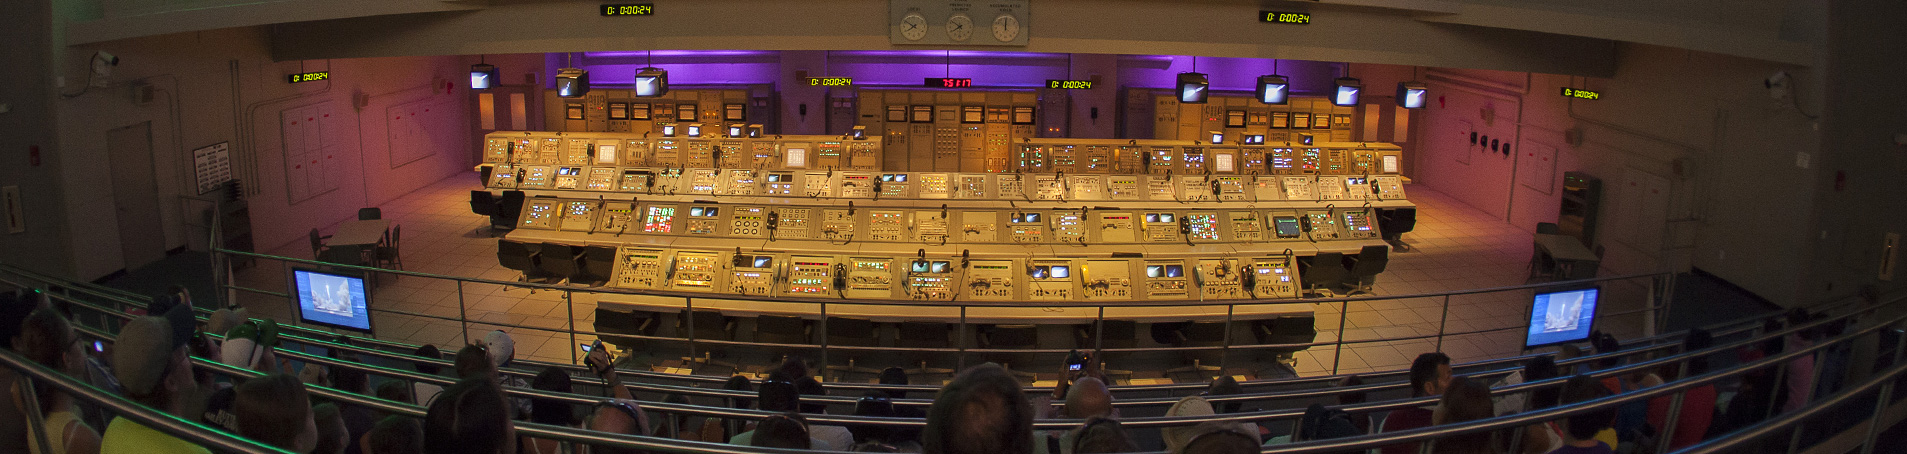 Apollo firing room theater